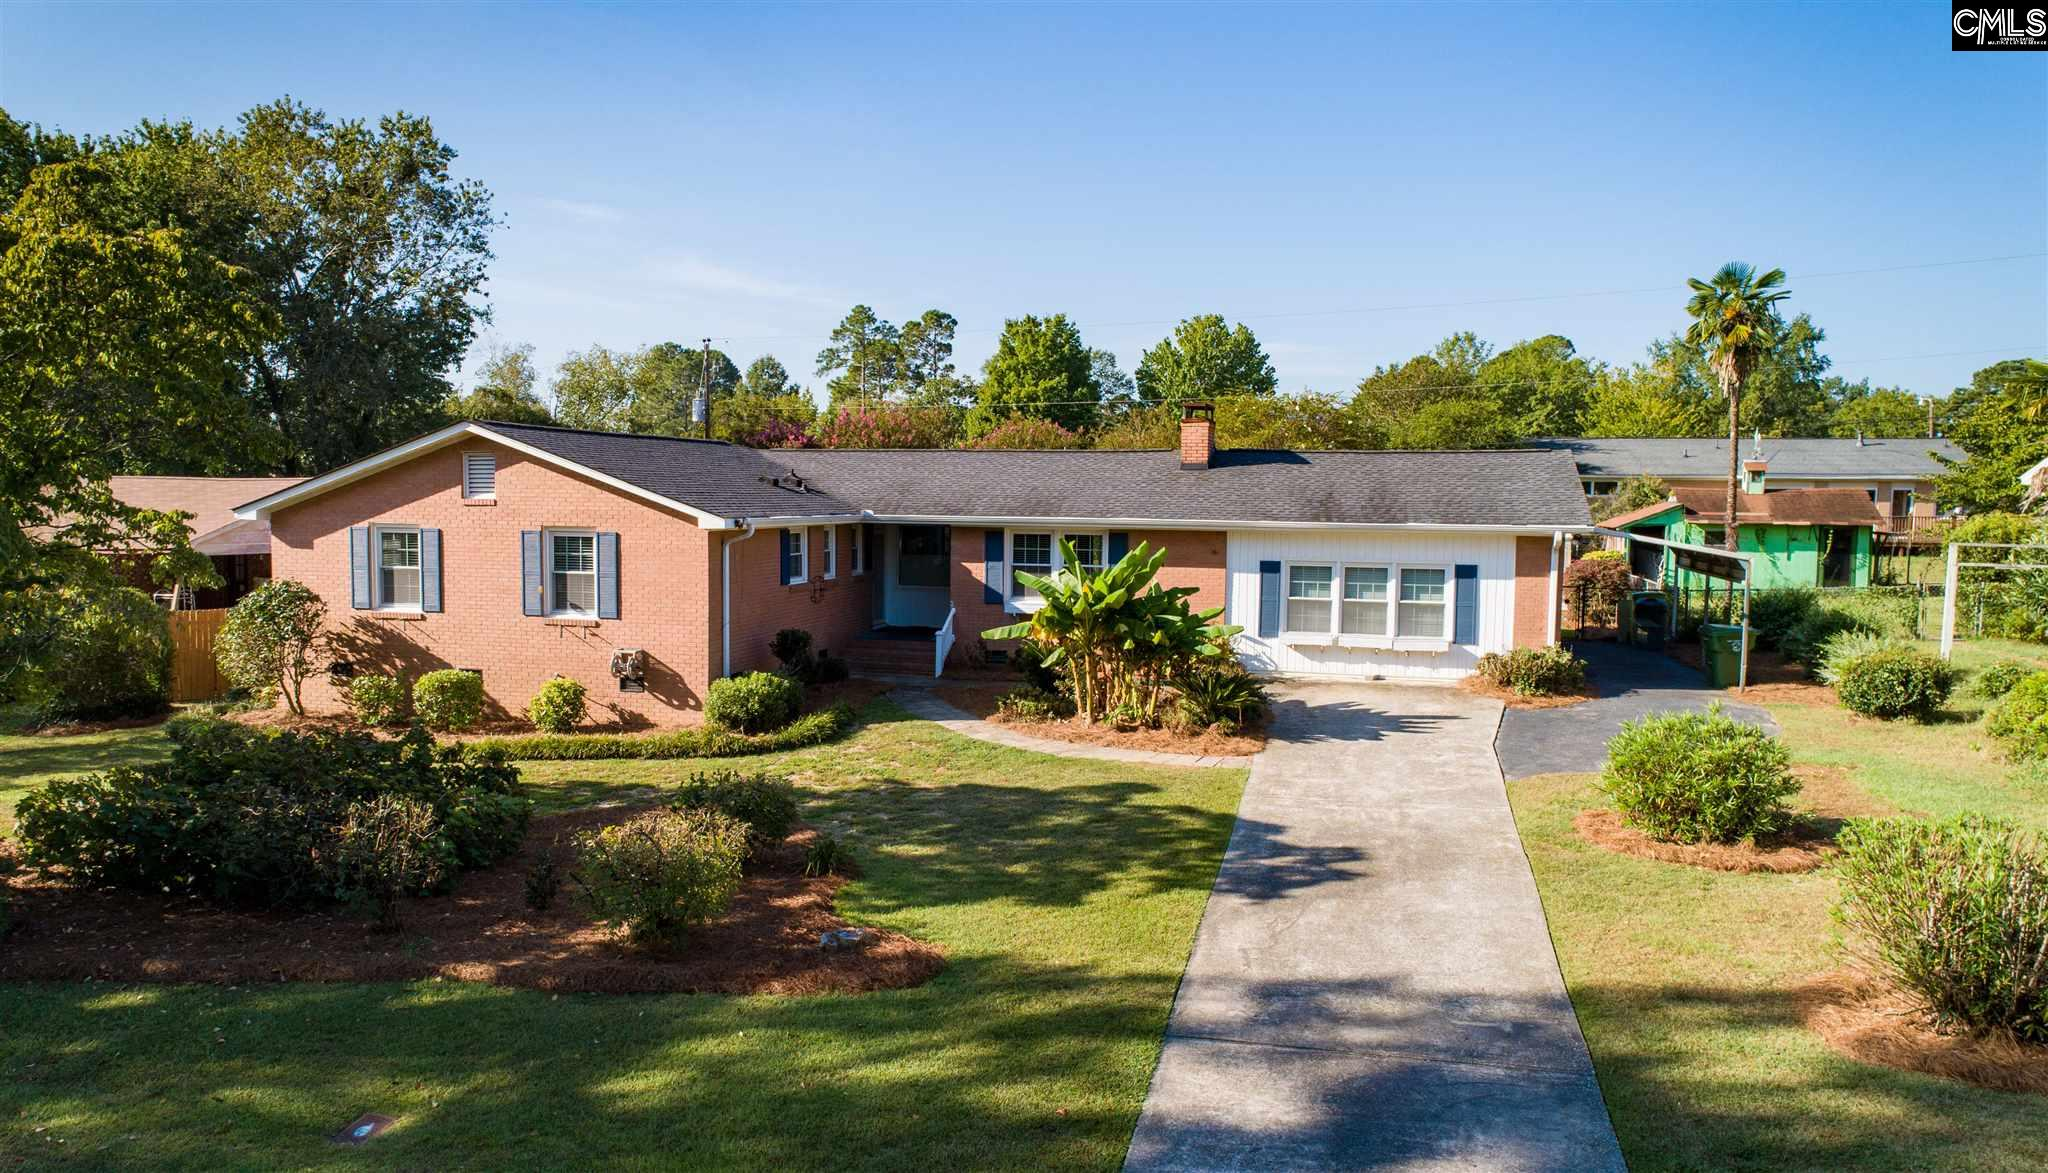 517 Knollwood Columbia, SC 29209